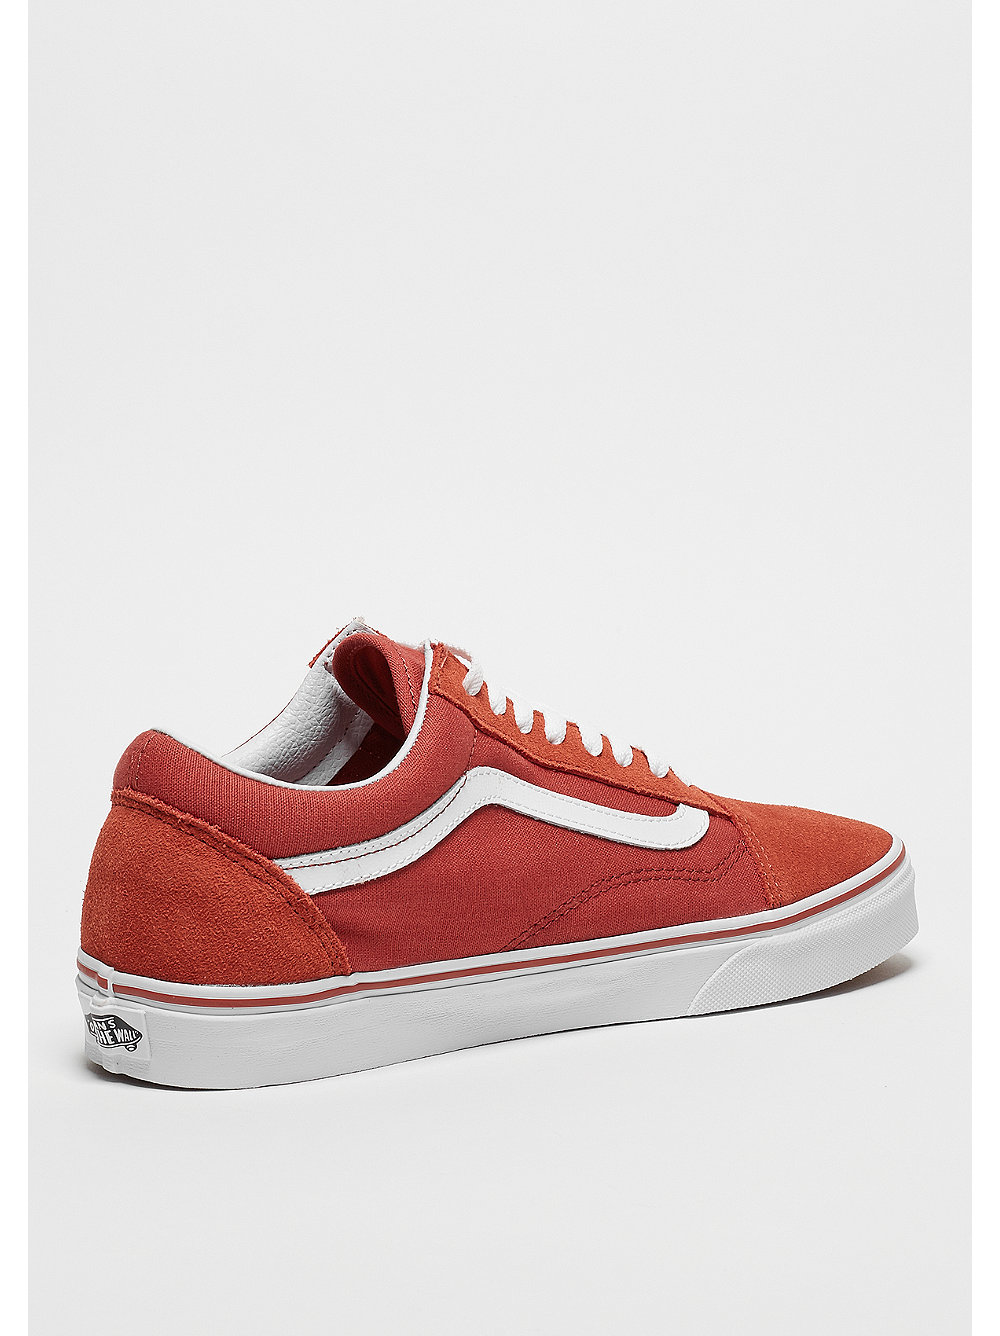 vans old skool skaterschuh